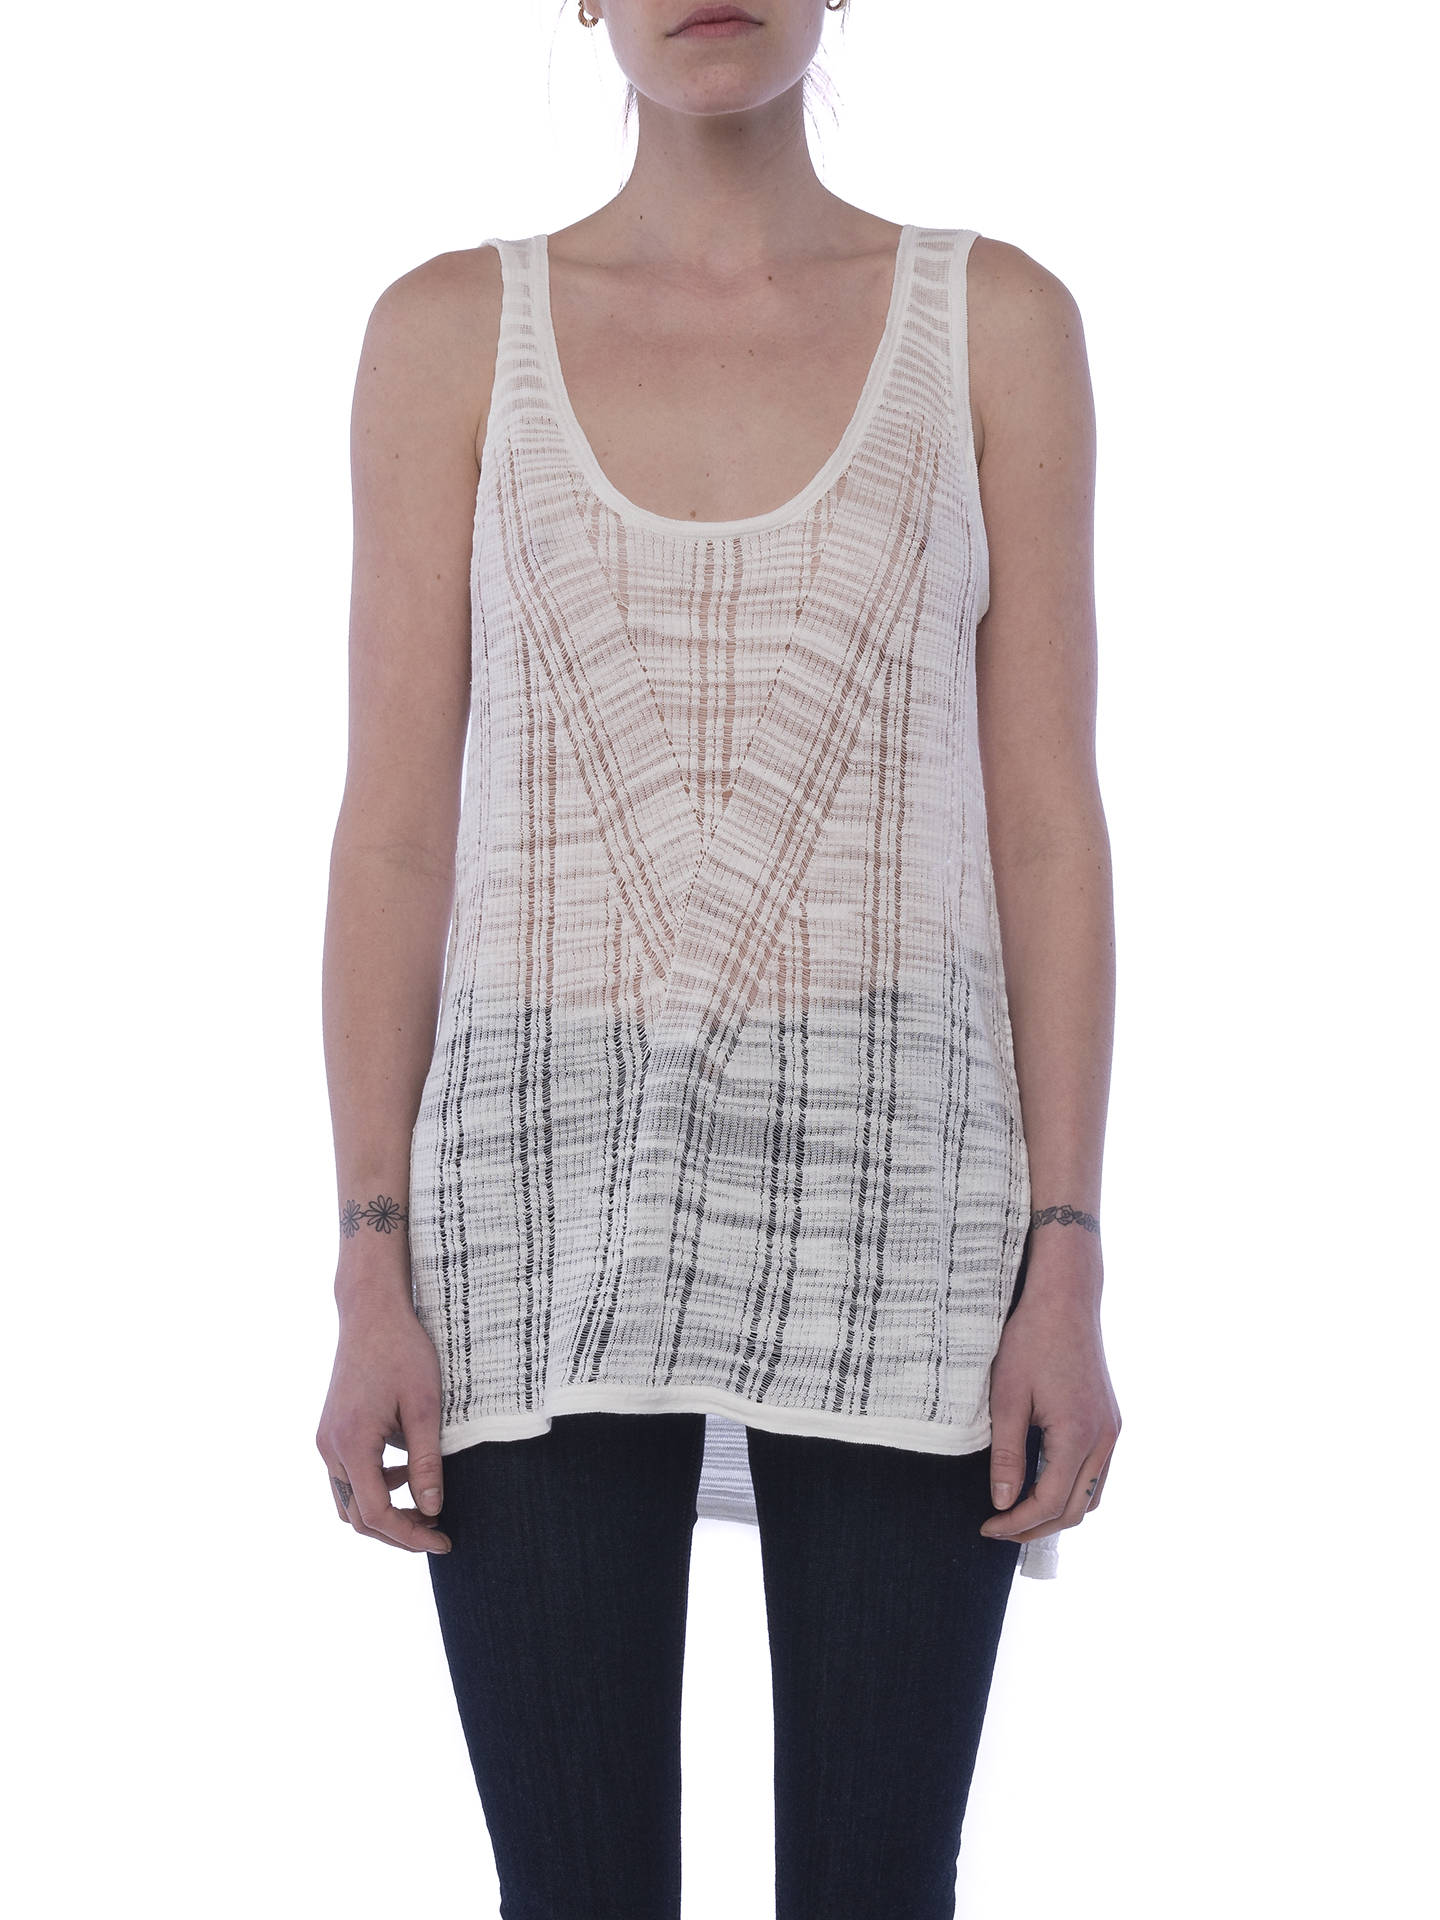 BuyFrench Connection Klint Stitch Knit Tank Top, Summer White, S Online at johnlewis.com